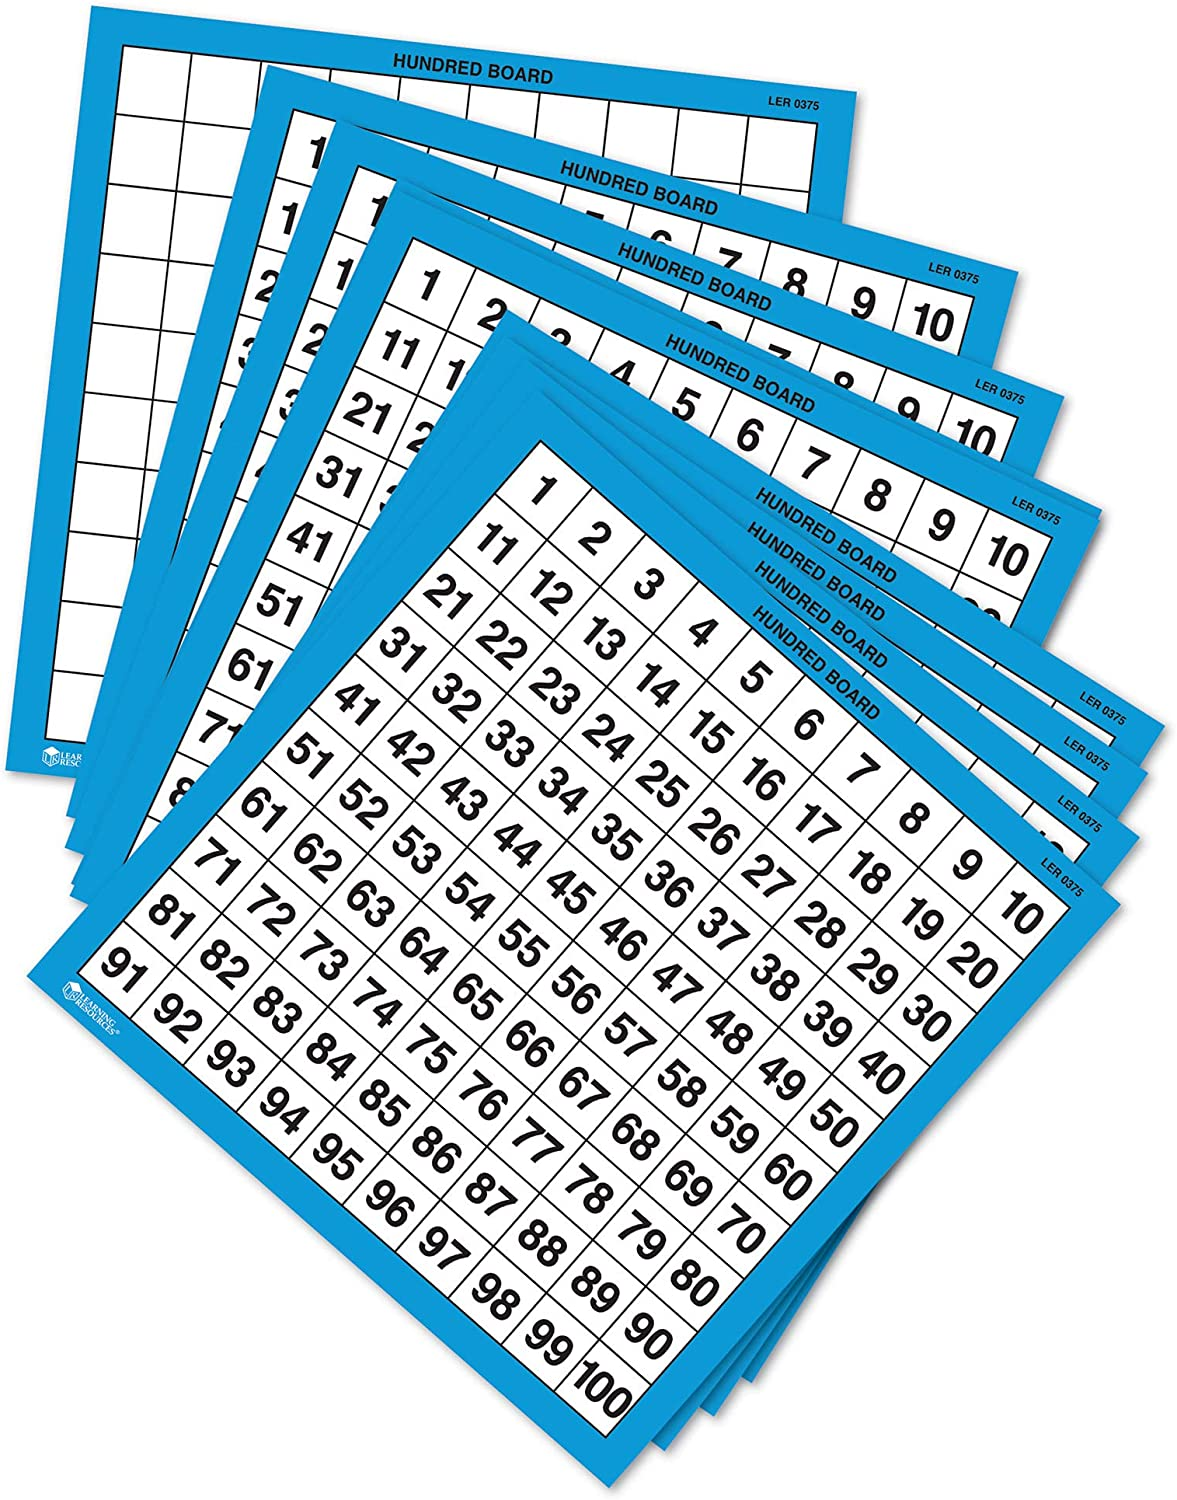 Learning Resources Laminated Hundred Boards, Dry-Erase Counting Aid, Set of 10, Ages 5+, Multicolor, Model:LER0375